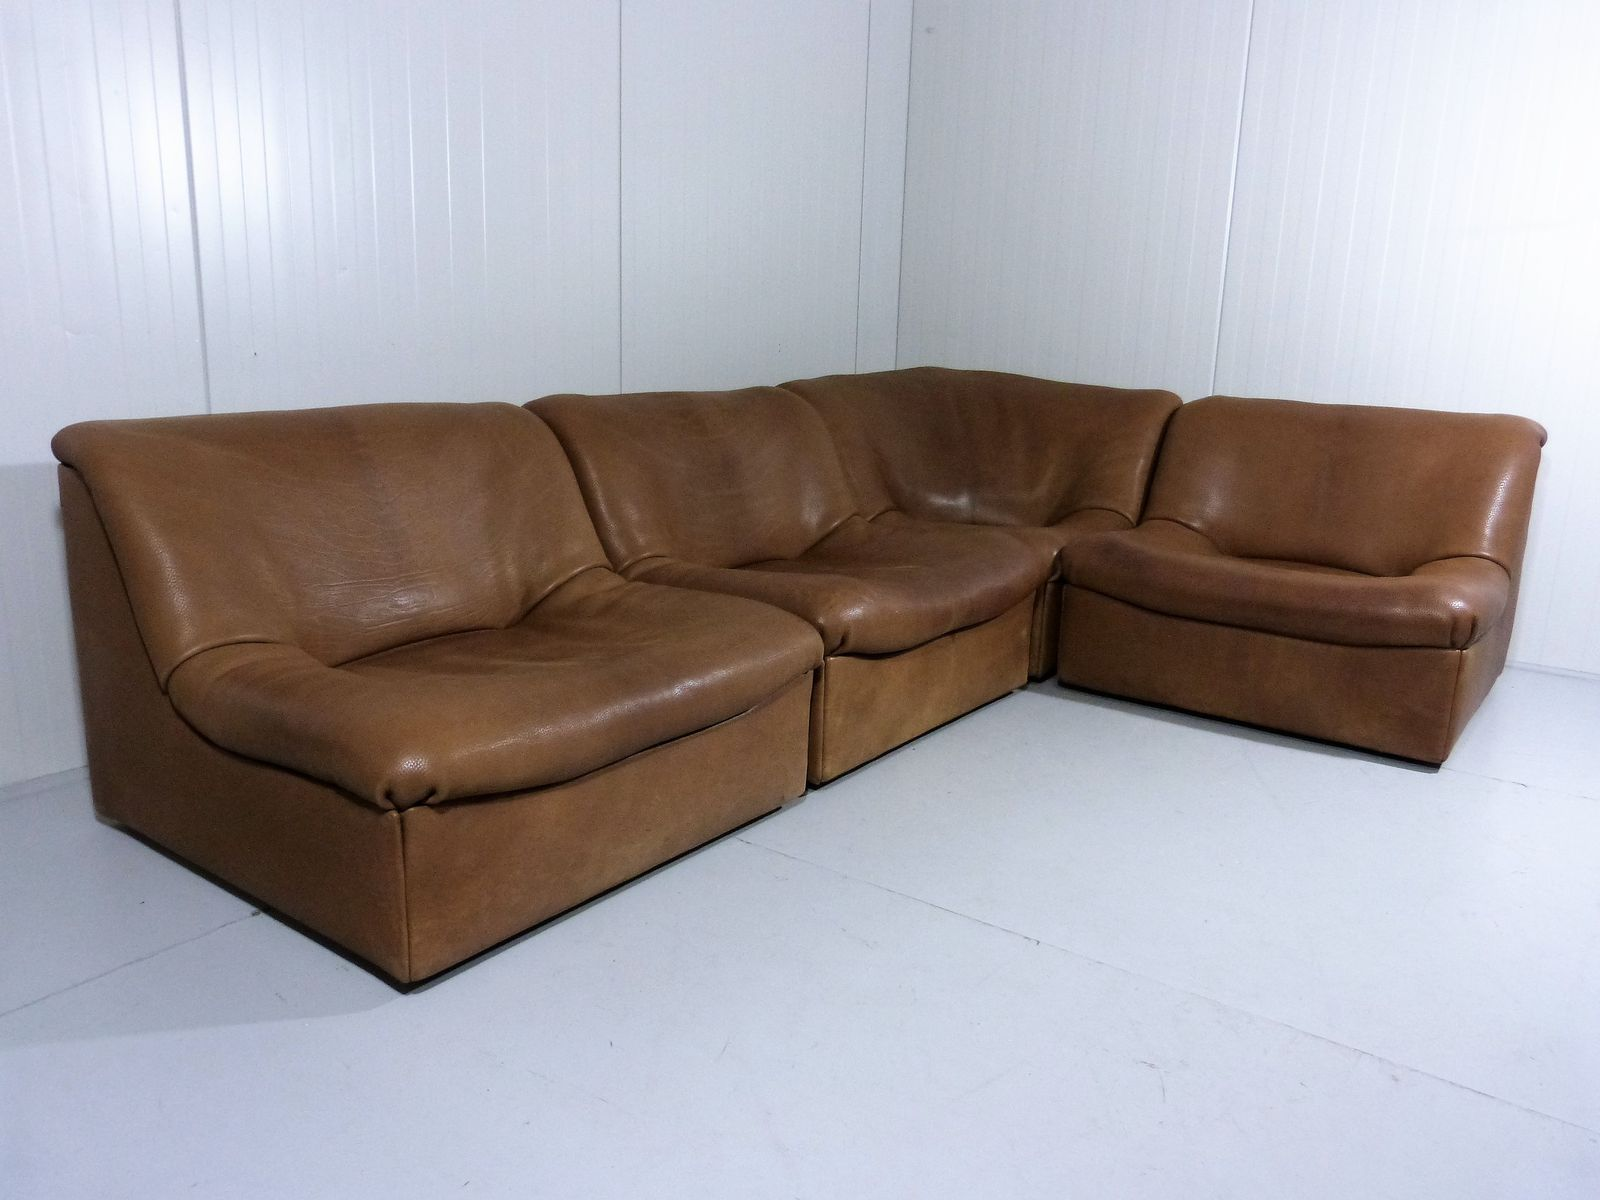 Ds 46 Buffalo Leather Modular Sofa From De Sede 1970s For Sale At Pamono